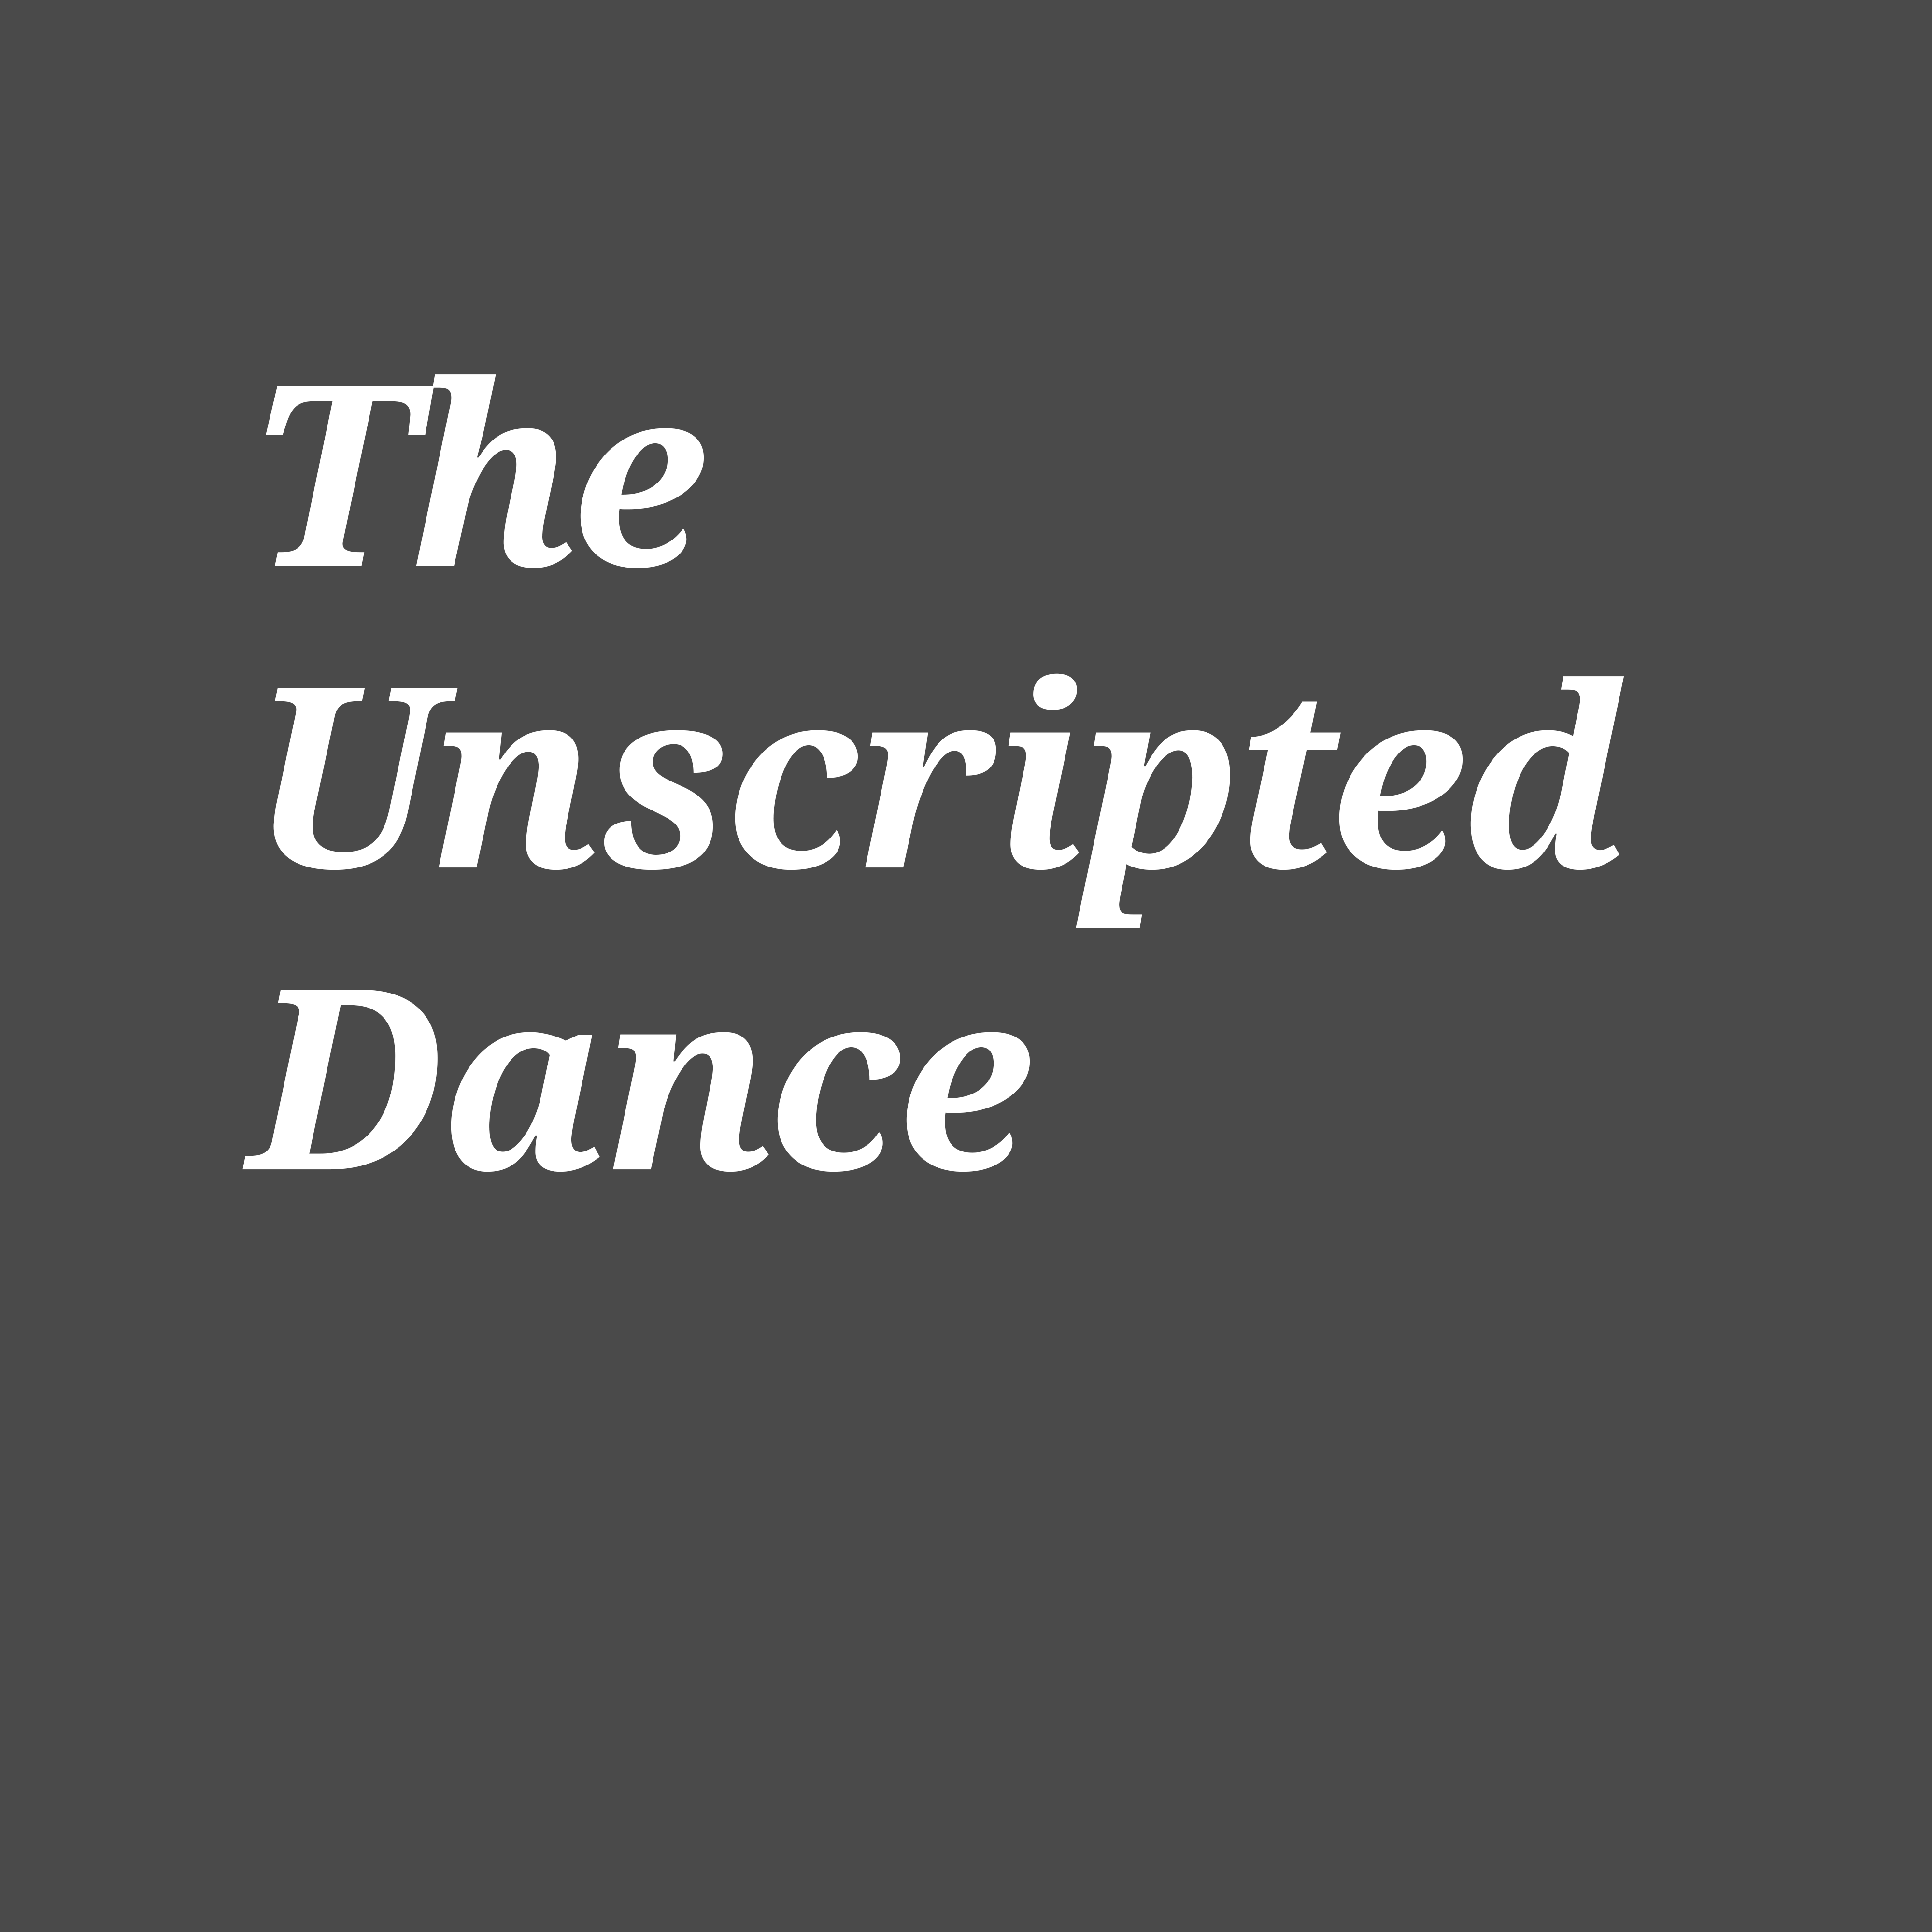 unscripted-dance